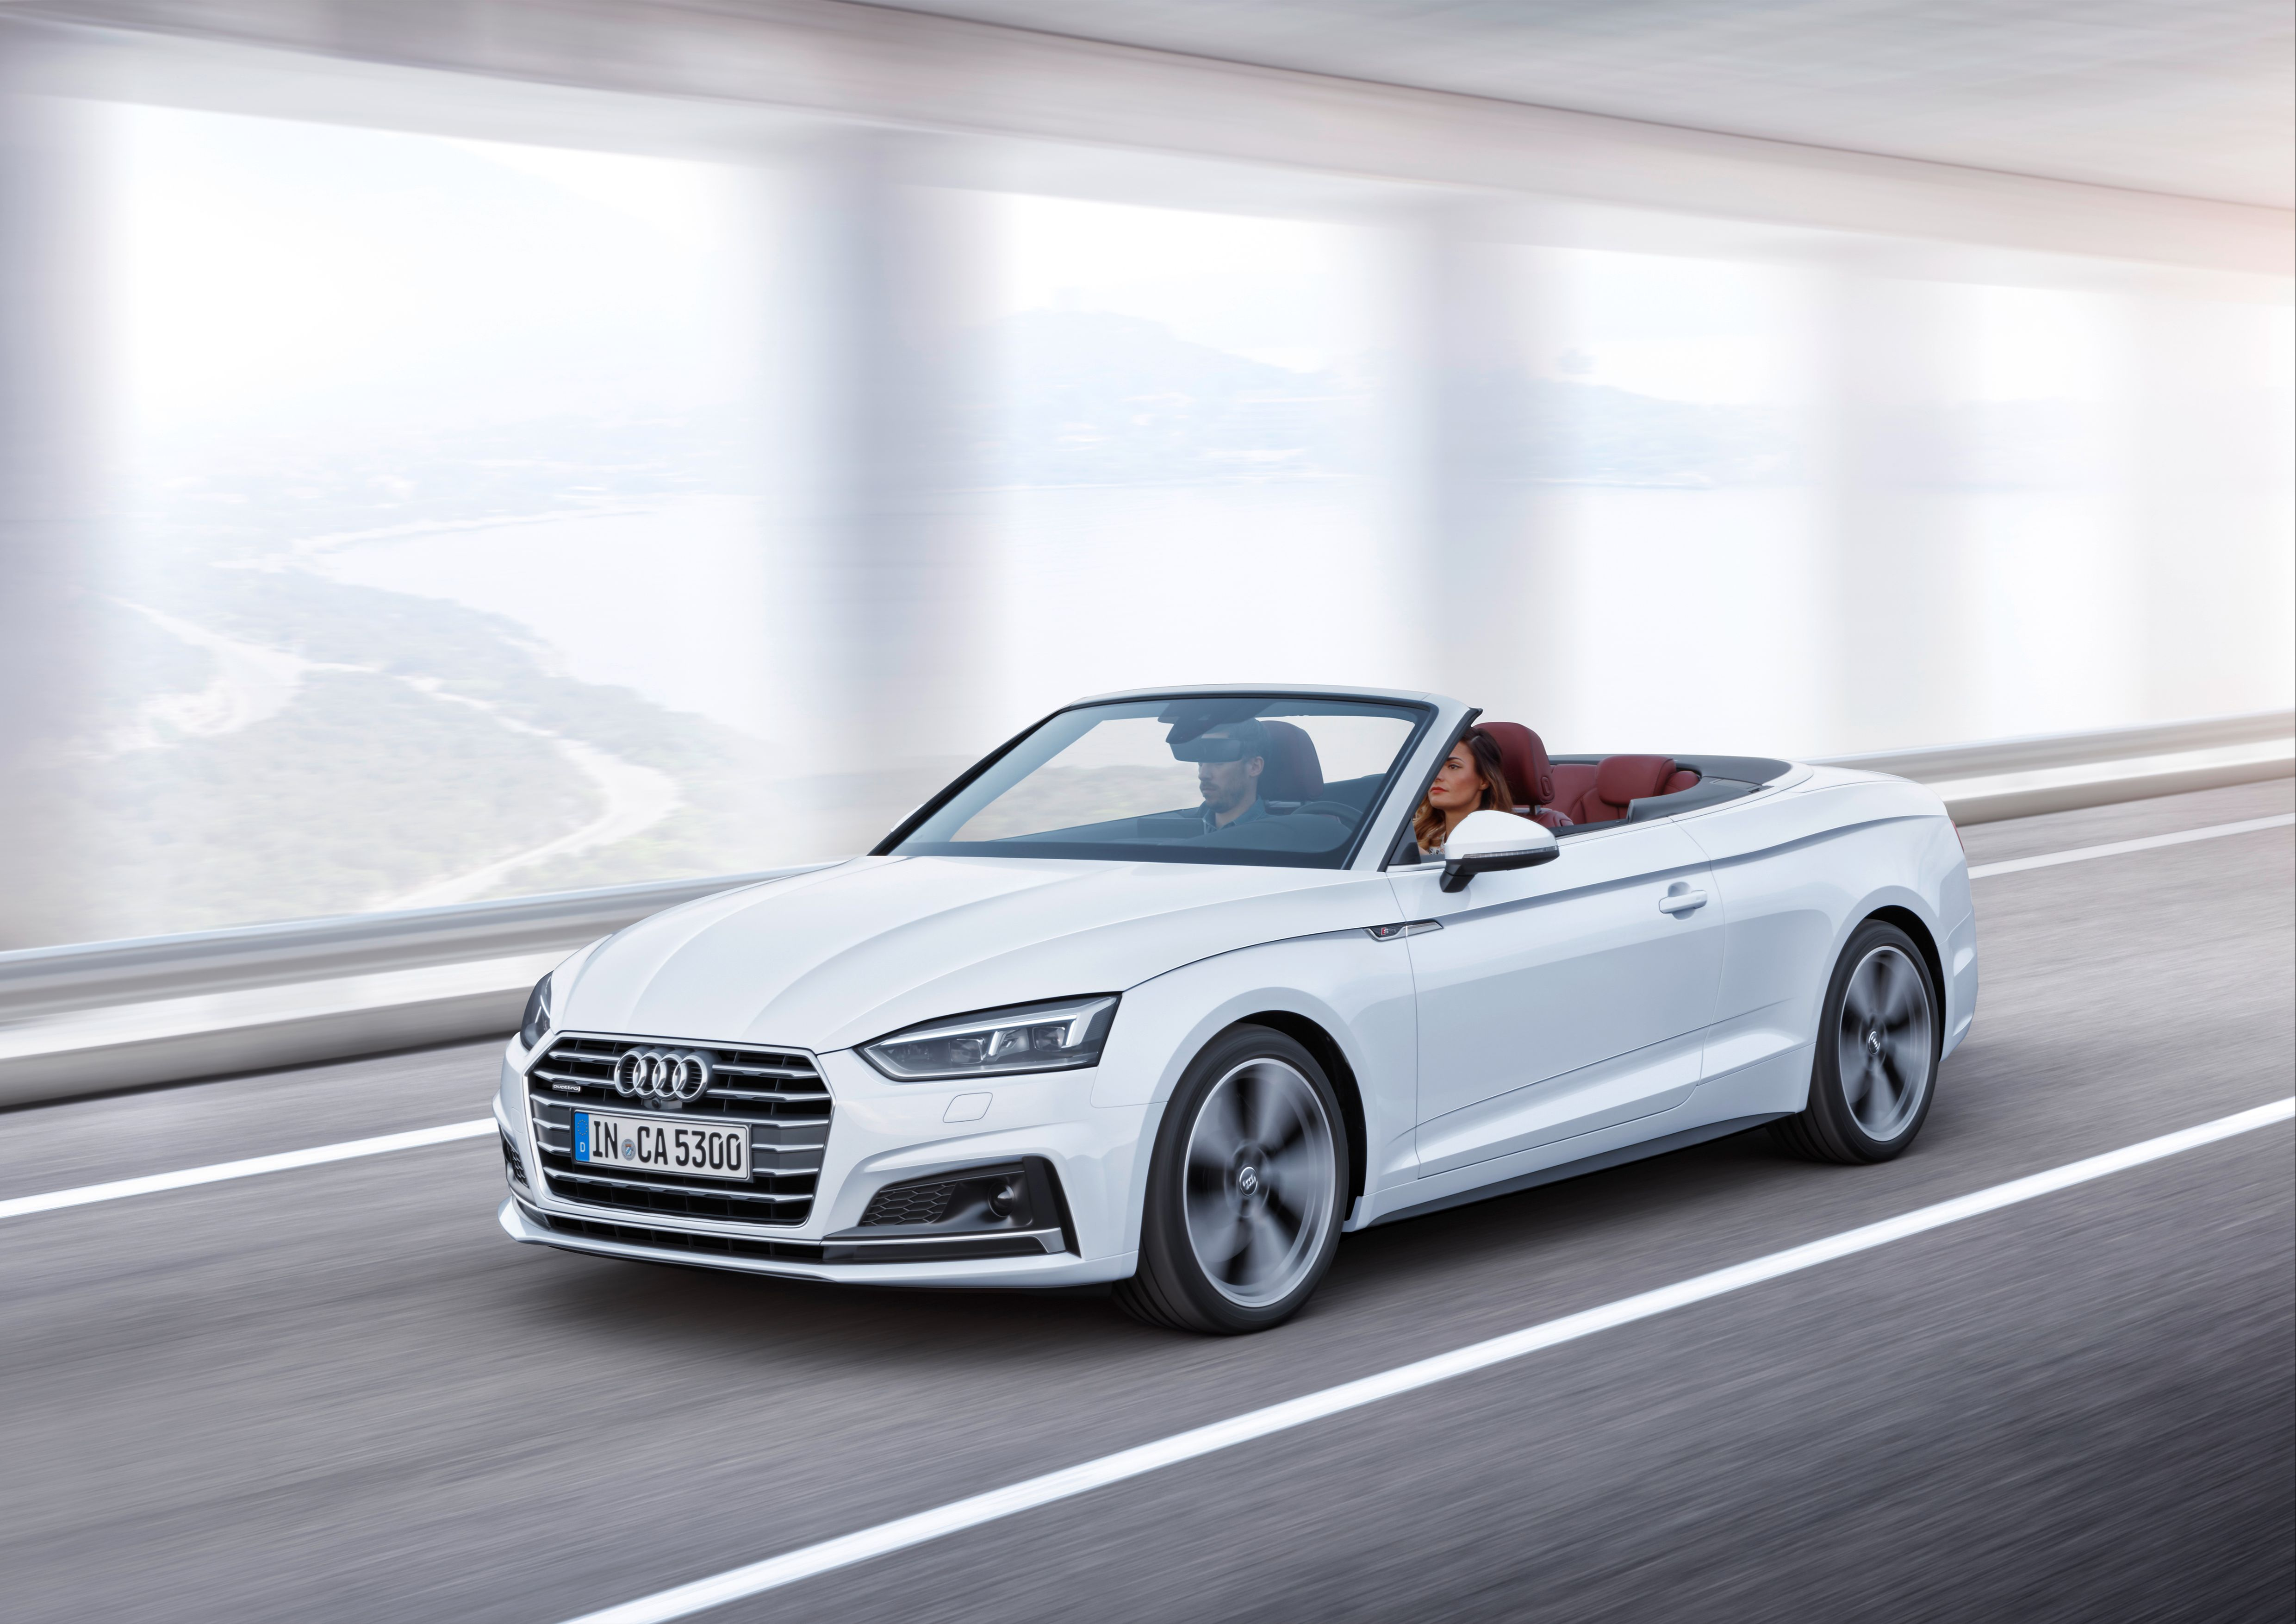 White Audi A5 Cabriolet whizzing along with the roof down